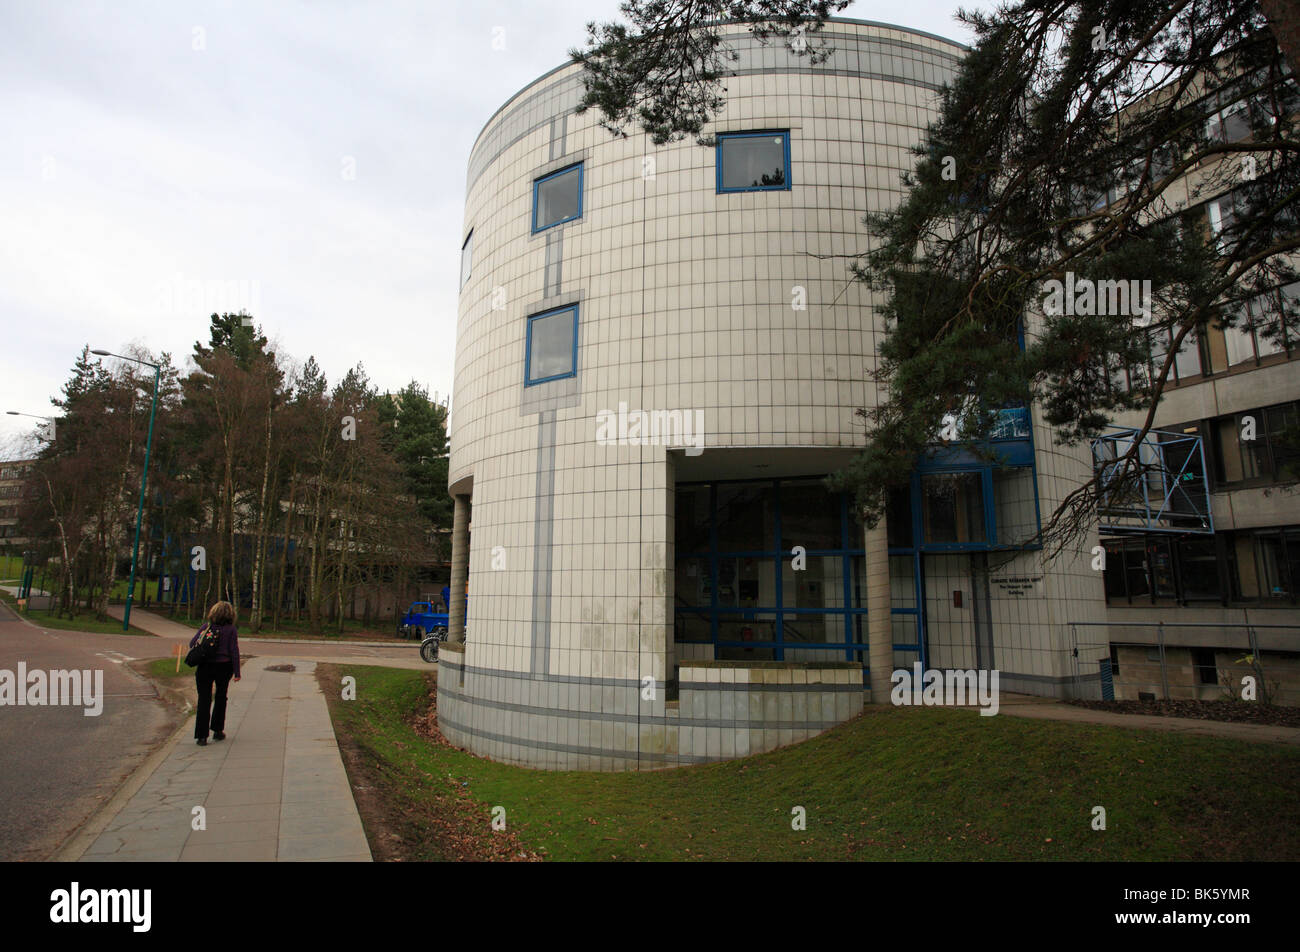 The Climatic Research Unit at the University of East Anglia, Norwich, Norfolk. - Stock Image